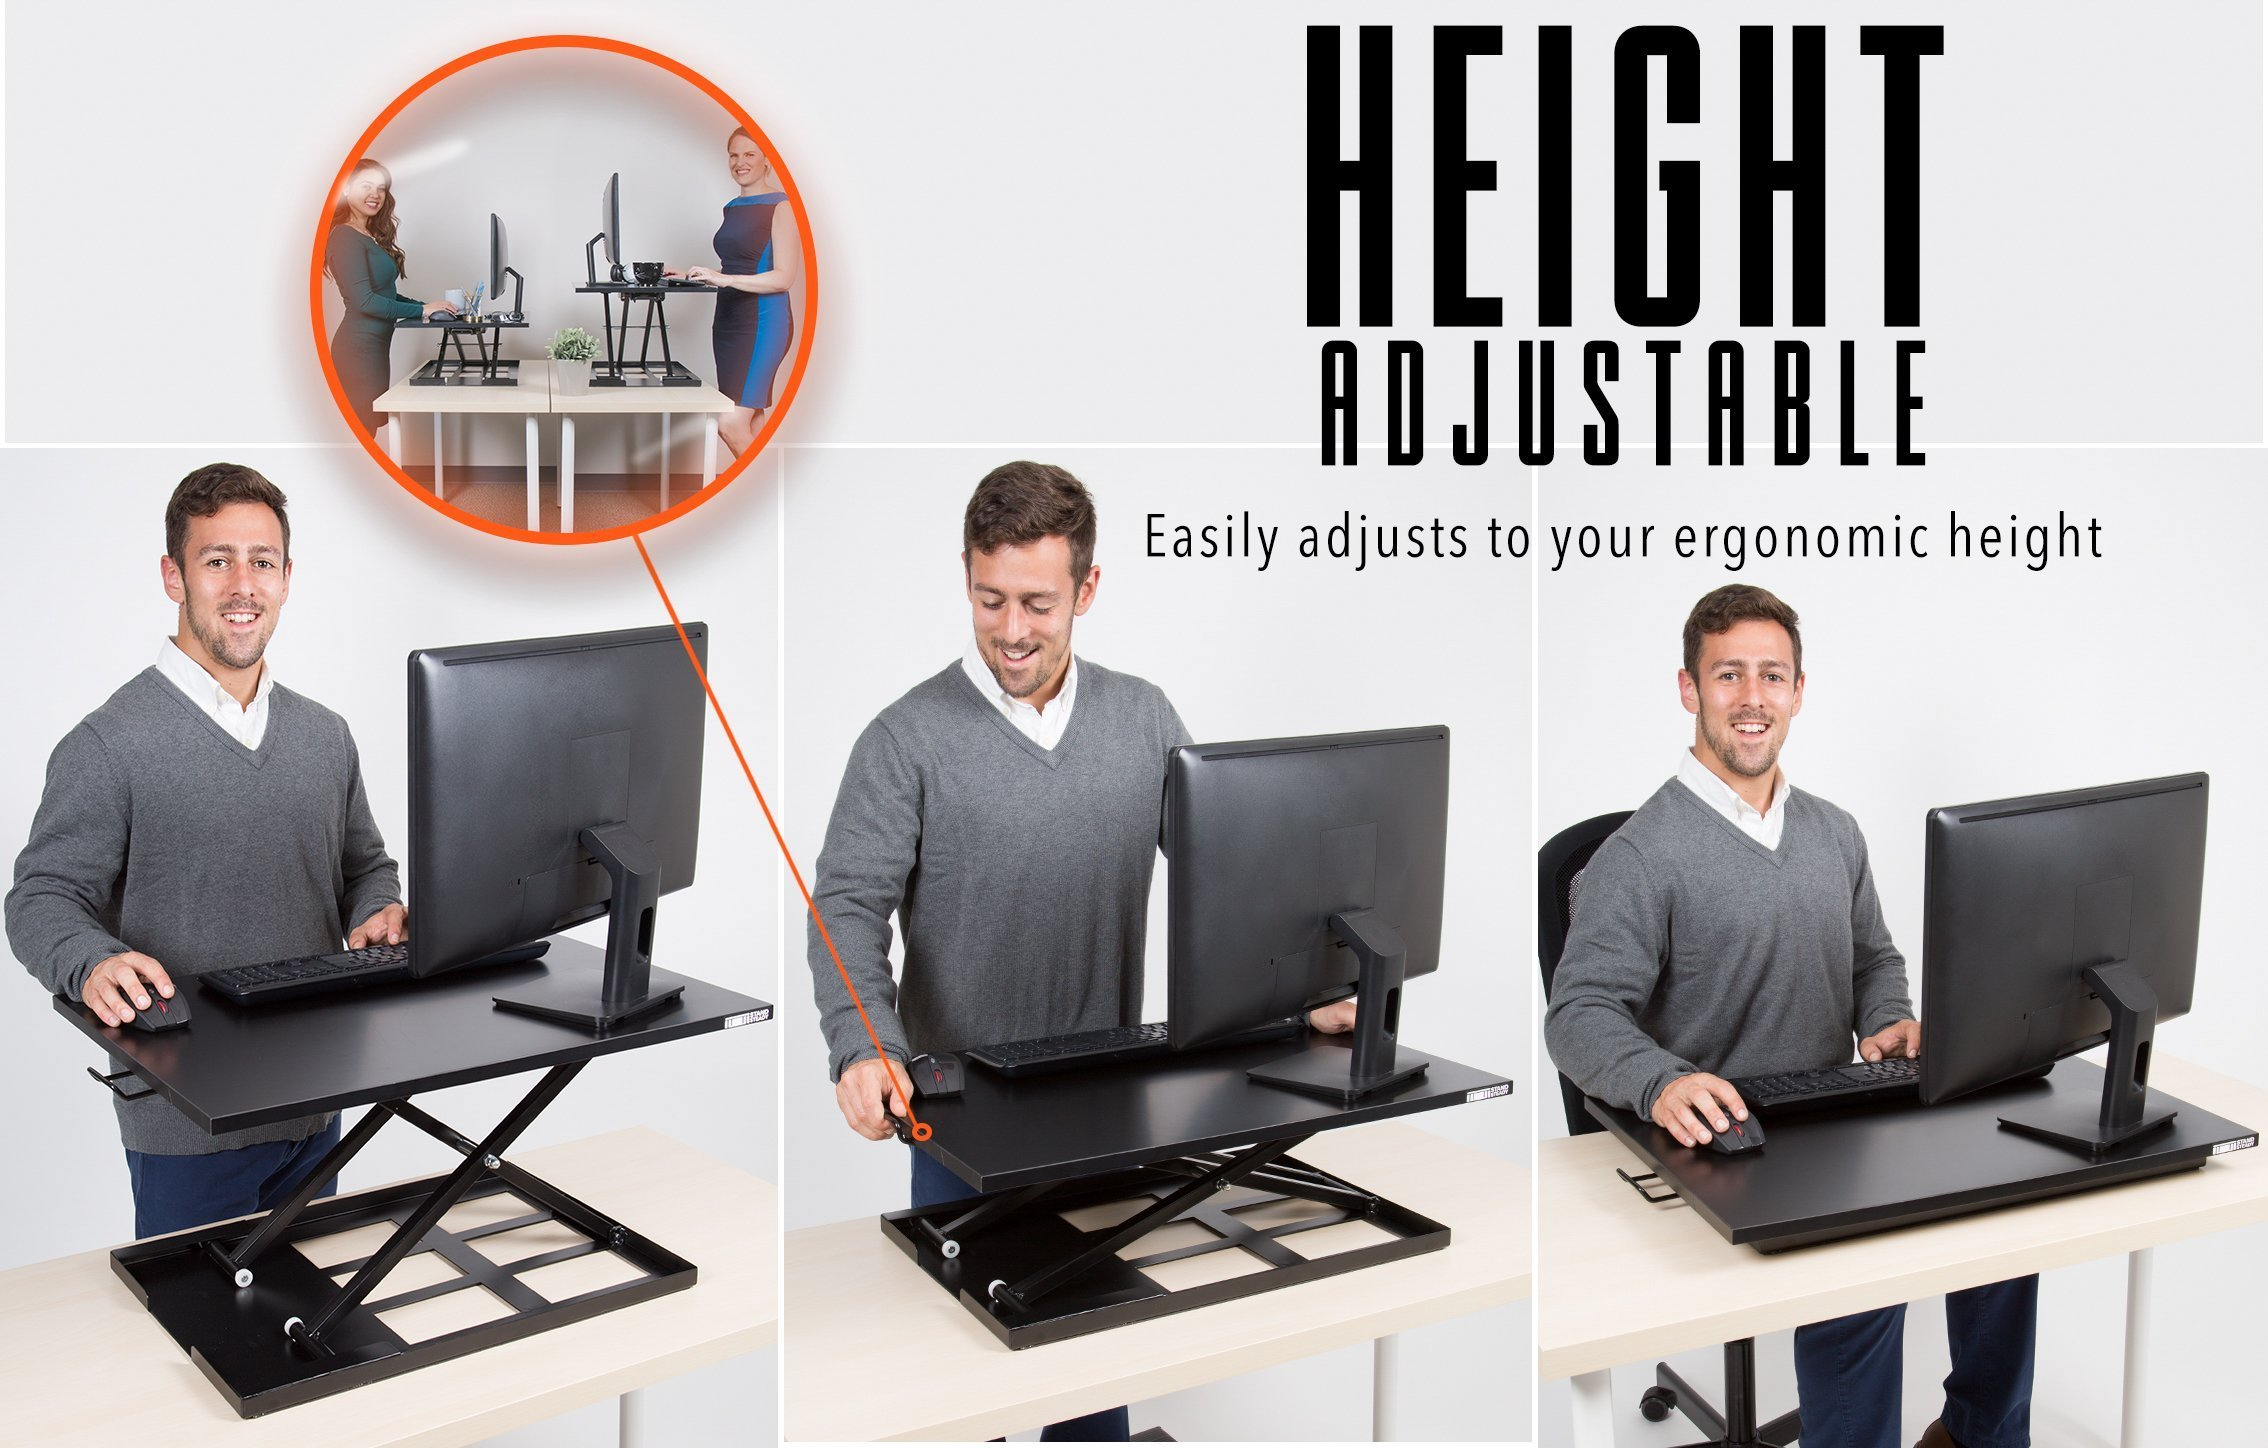 Standing Desk - X-Elite Pro Height Adjustable Desk Converter - Size 28in x 20in Instantly Convert any Desk to a Sit / Stand up Desk (Black) by Stand Steady (Image #5)